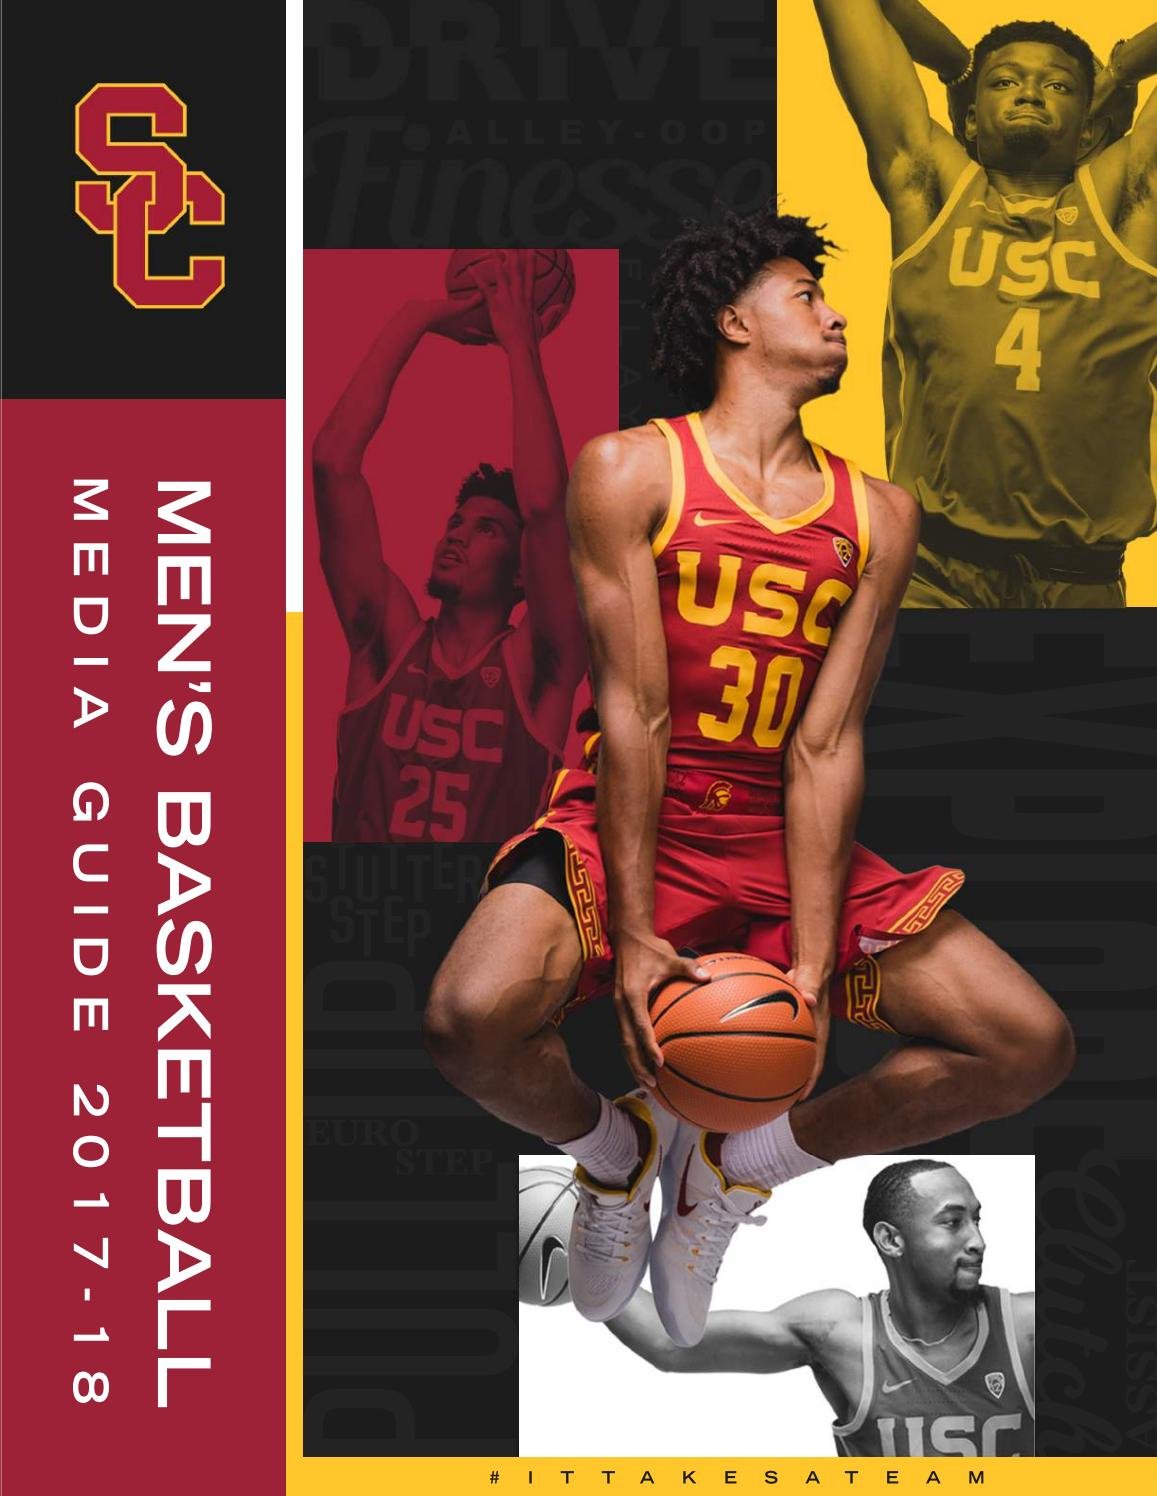 b5d0b22a4b8 2017-18 USC Men s Basketball Media Guide by USC Athletics - issuu